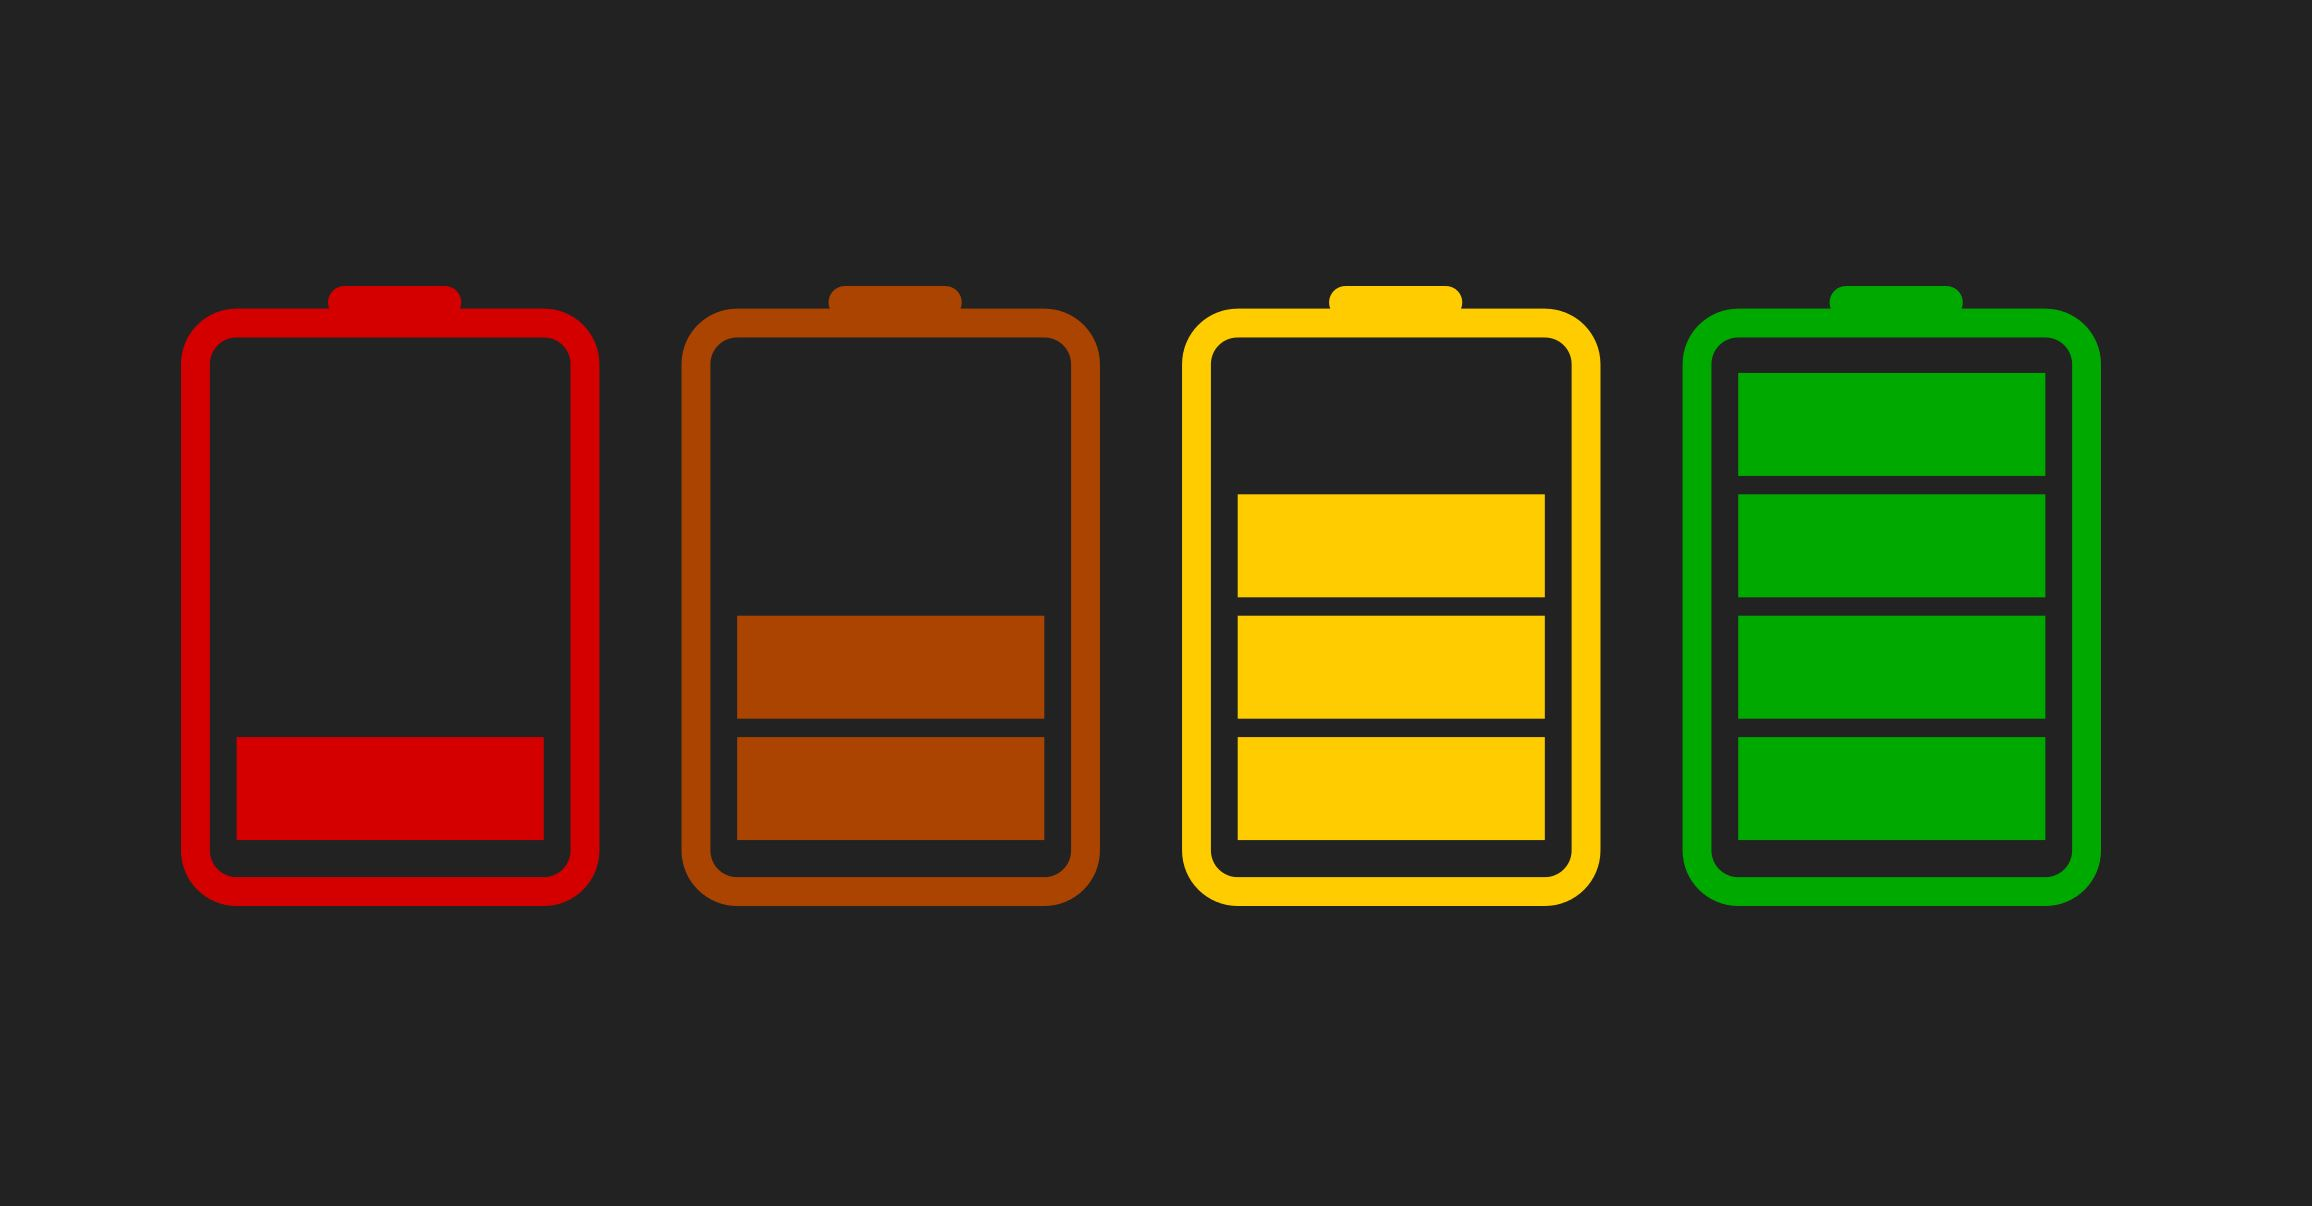 Research is finding better ways to make batteries both big and small - Image Credit:  michaljamro via pixabay